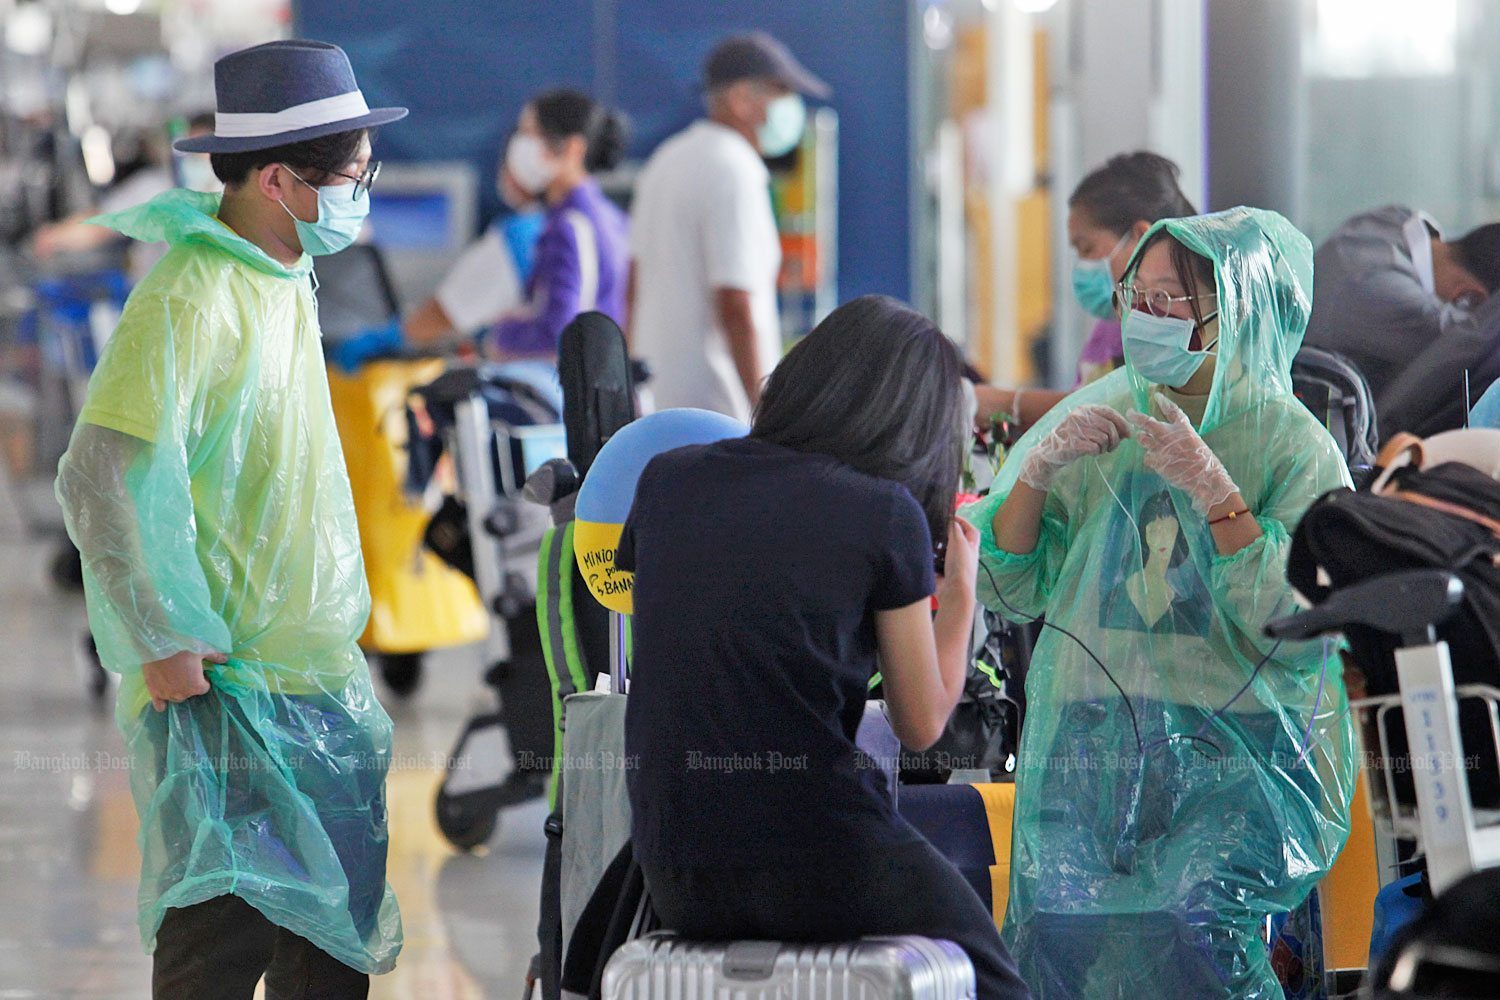 Foreign travellers at Suvarnabhumi airport wear face masks and green plastic anoraks to protect themselves from Covid-19 as aviation agencies seek to step up the screening of passengers from countries suffering epidemics of the virus. (Photo by Wichan Charoenkiatpakul)